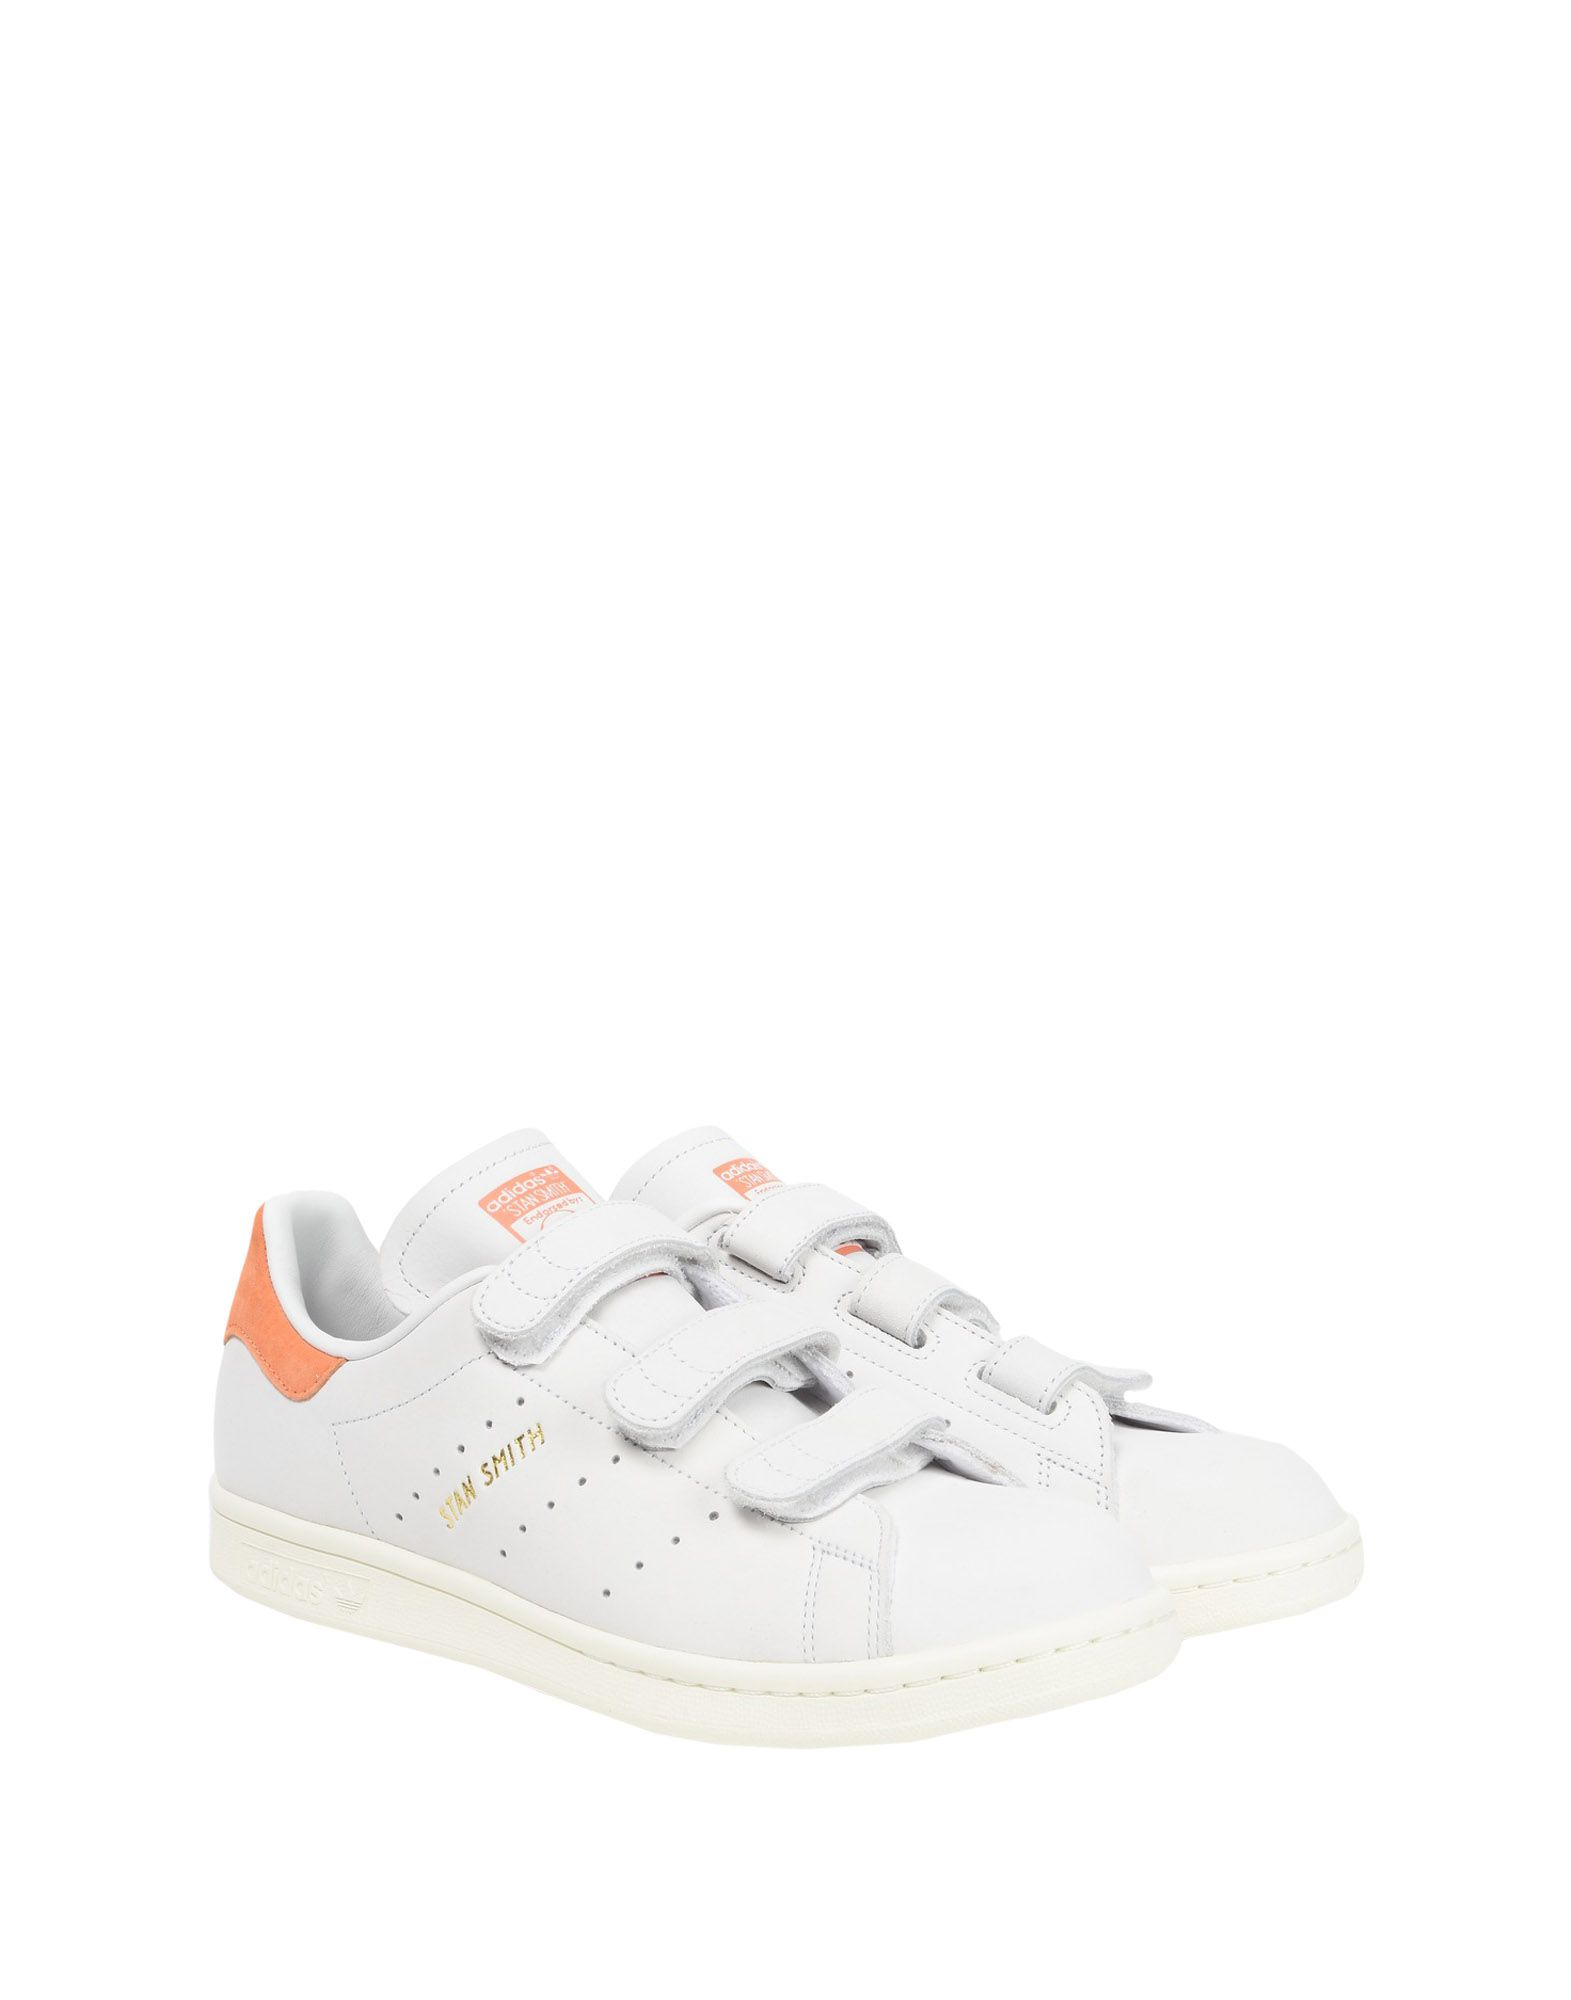 Sneakers Adidas Originals Stan Smith Cf W - Femme - Sneakers Adidas Originals sur